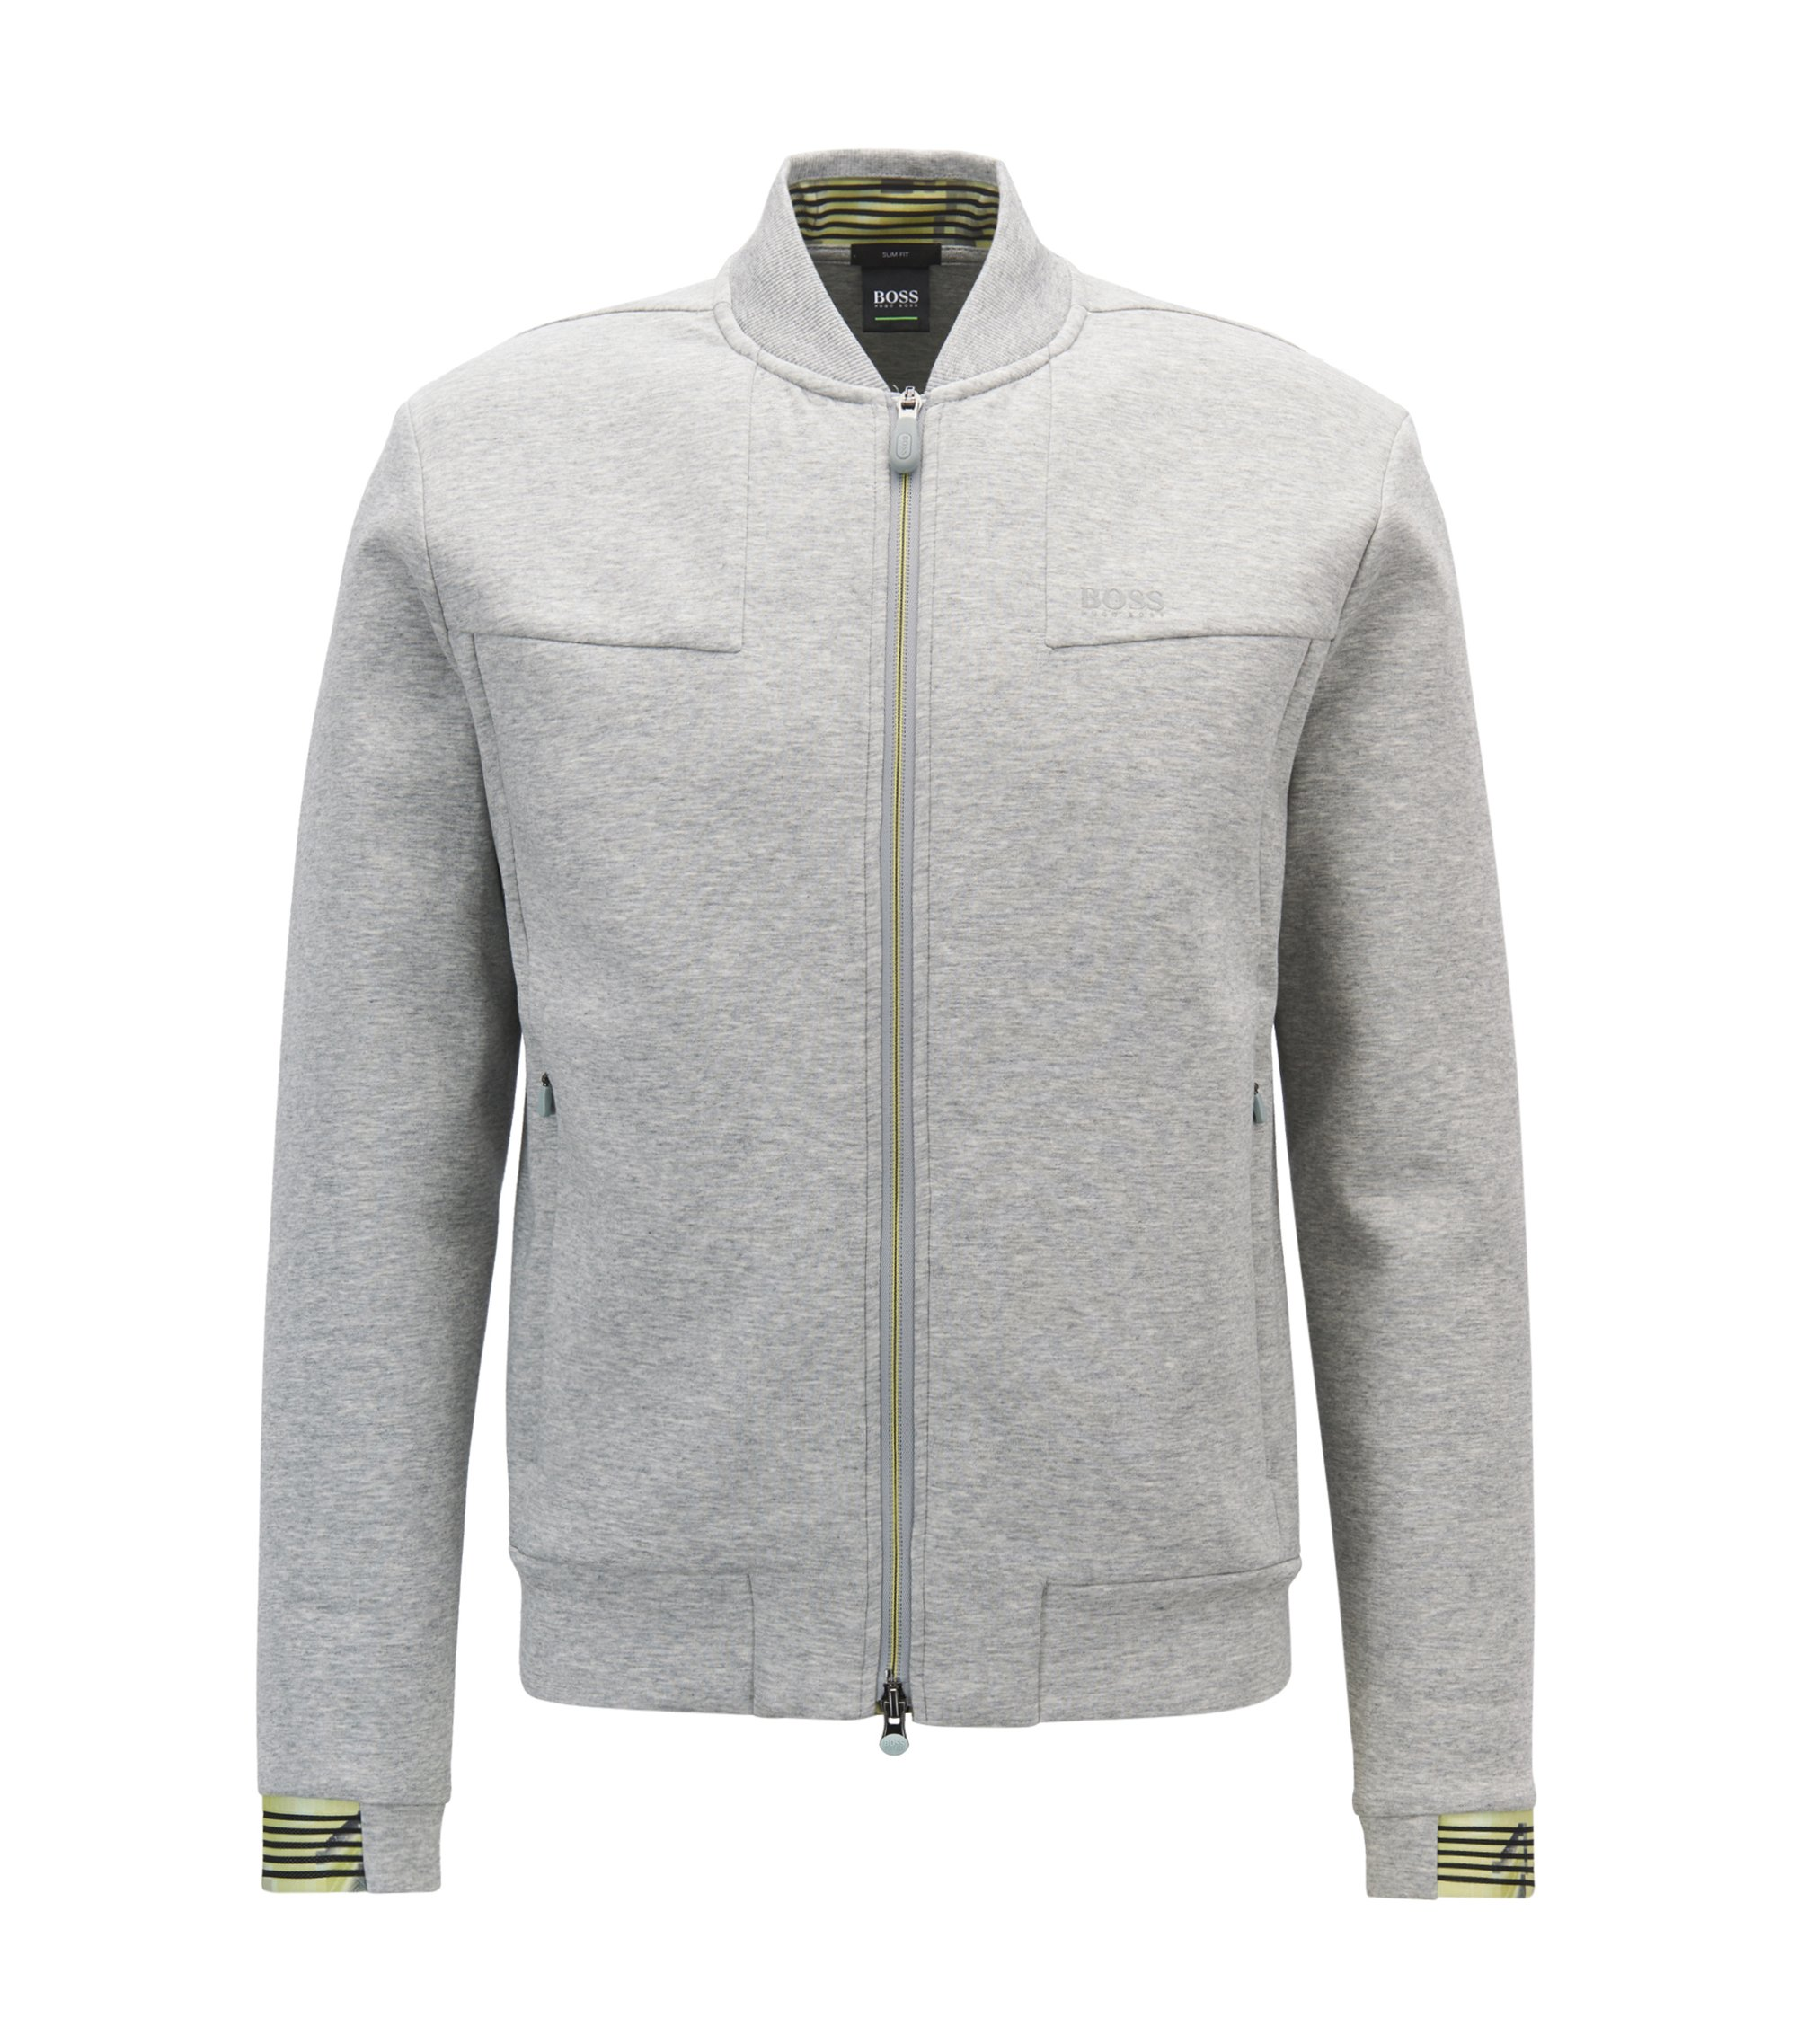 Veste réversible Regular Fit en coton mélangé179.00BOSS